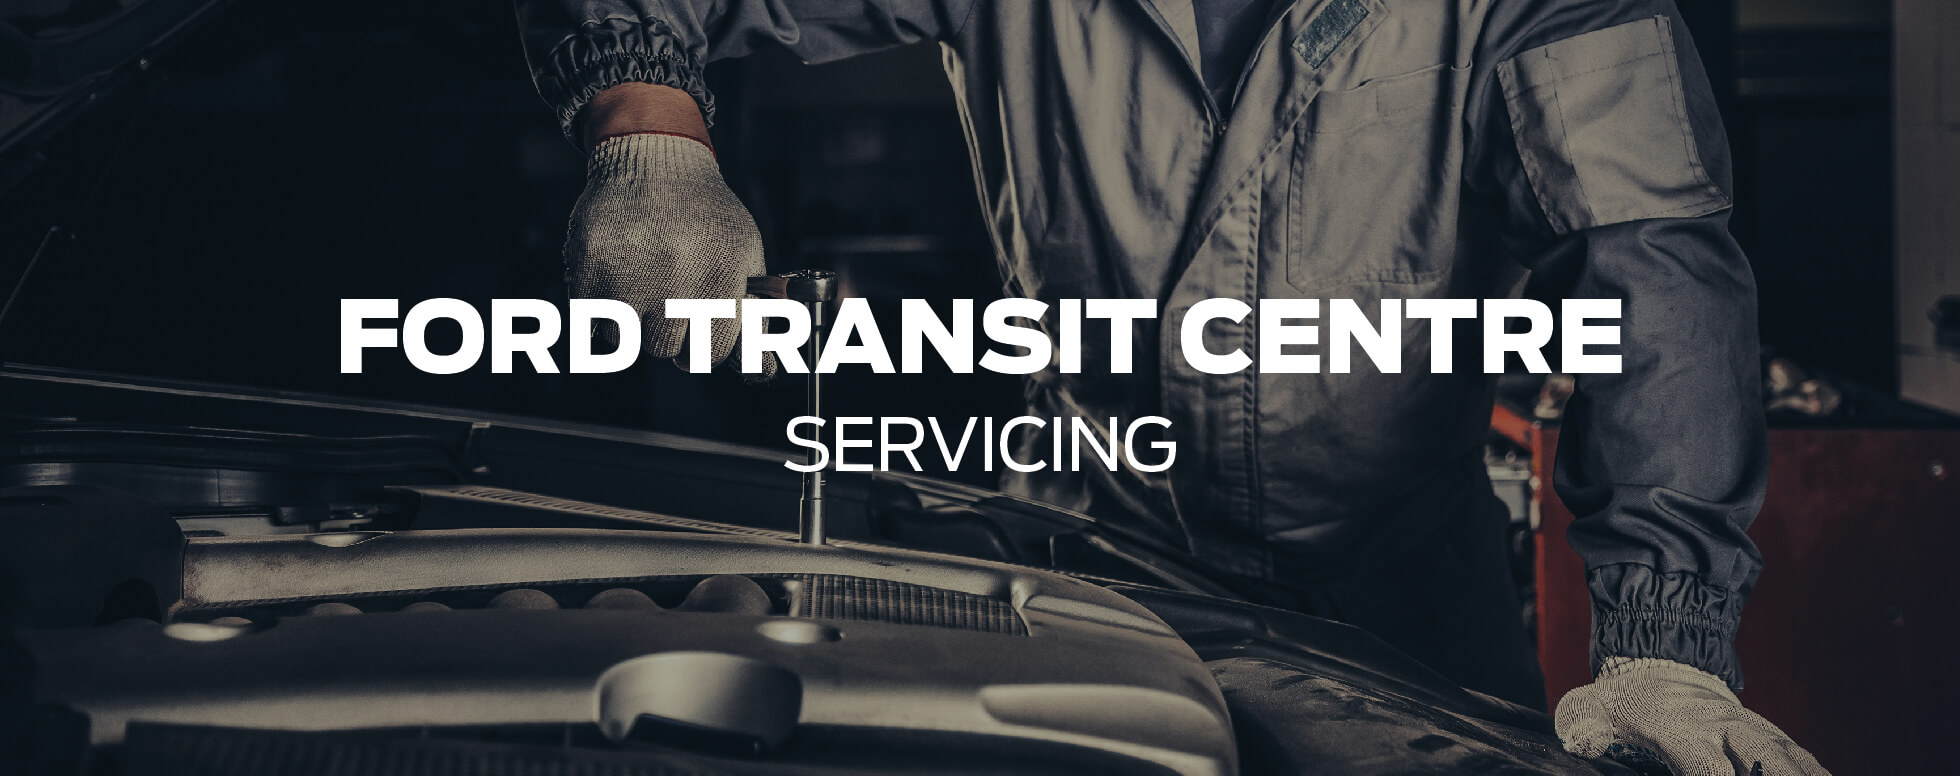 Ford Transit Centre Service